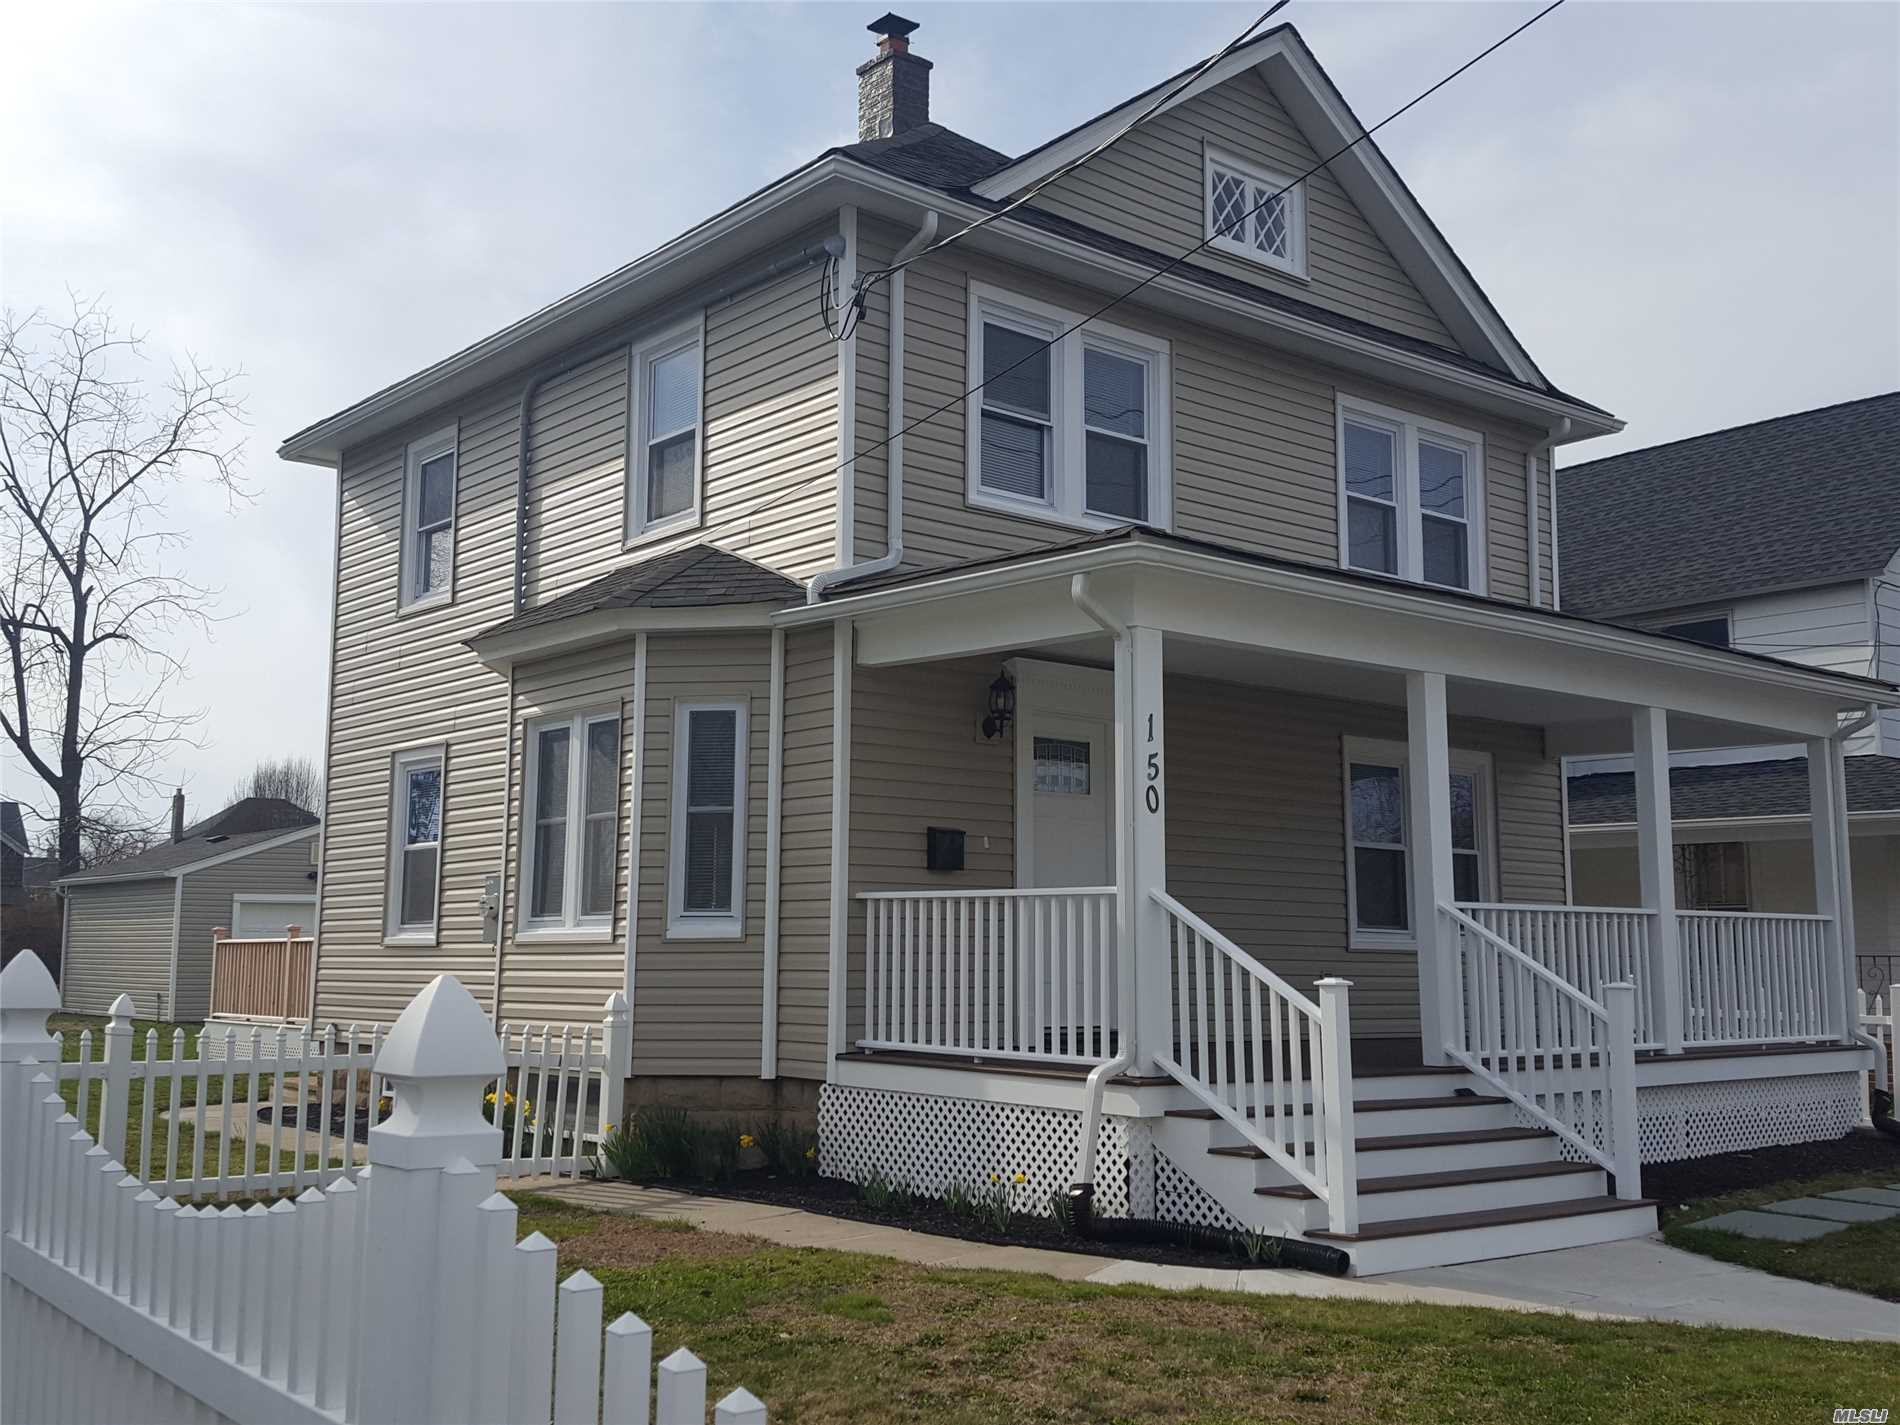 Outstanding Fully Renovated Village Colonial Located In The Heart Of Patchogue Close Distance to Main Street With Shopping, Restaurants, Theatre, Beaches And Public Transportation. No Expense Spared On This Charmer, Everything New Including Kitchen, Baths, Roof, Windows, Siding, Heating System, Electric, Plumbing, Septic, Trex Porch, Raised Panel Staircase And More. Move In Ready. Call Today For Private Showing